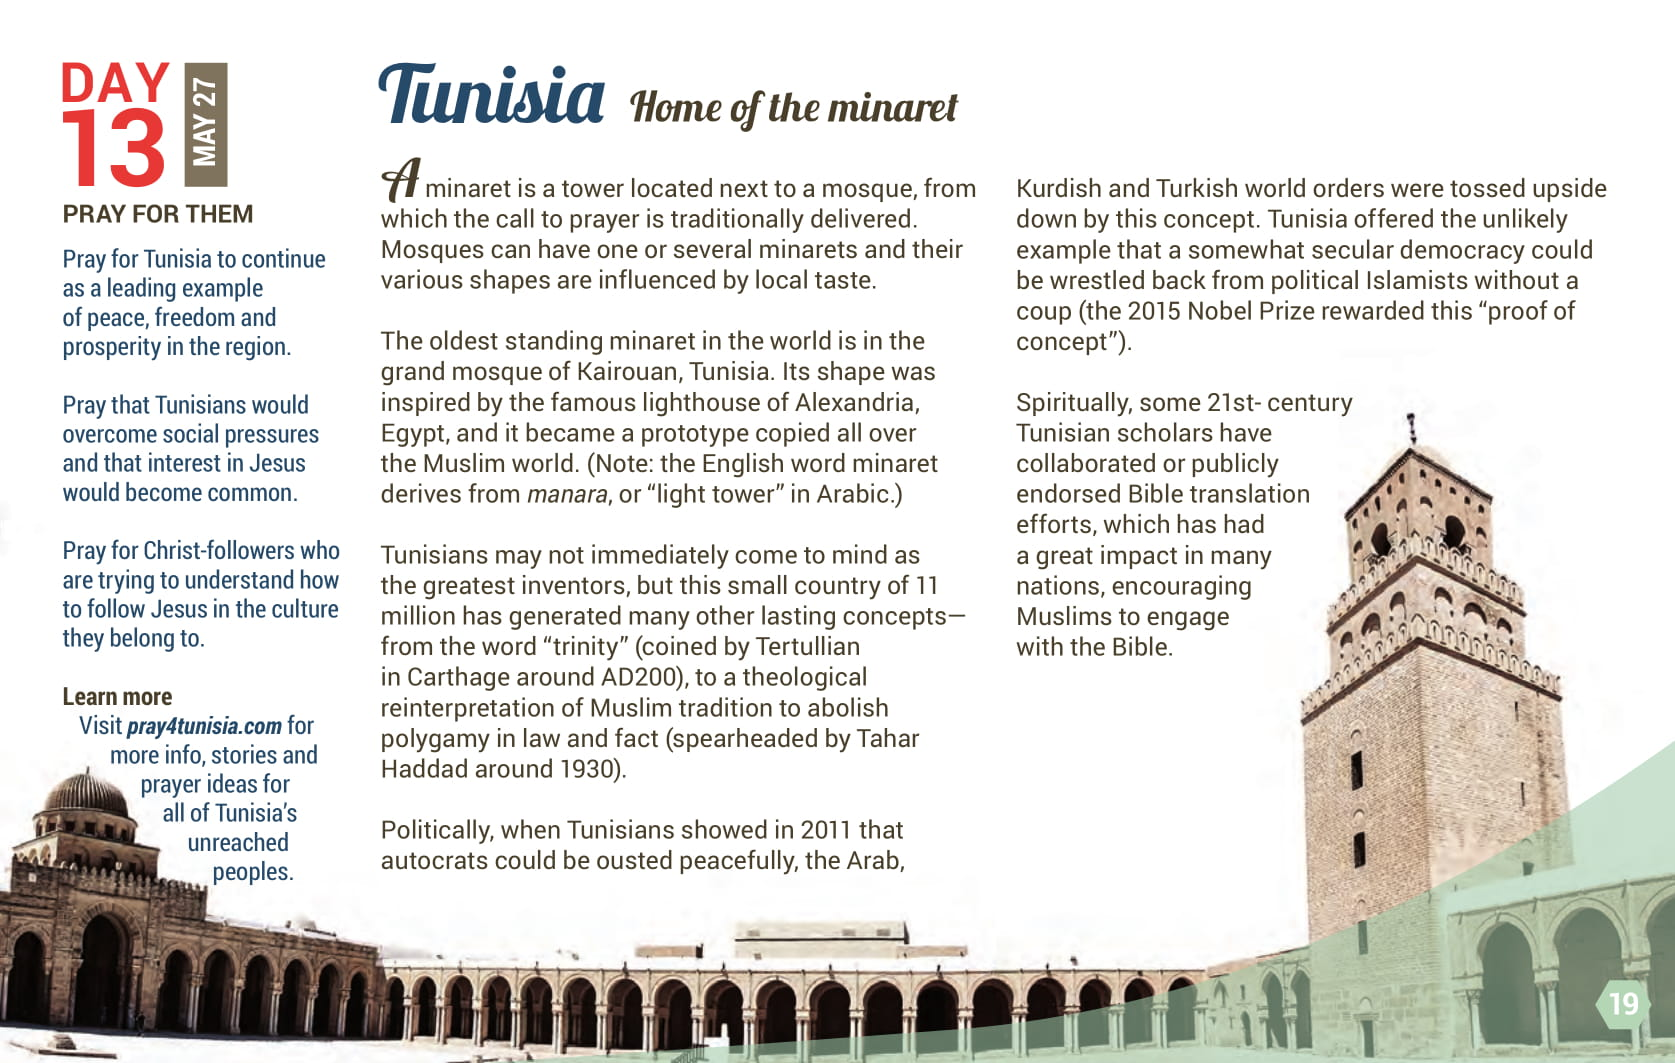 Day 13 - Tunisia Home of the minaret